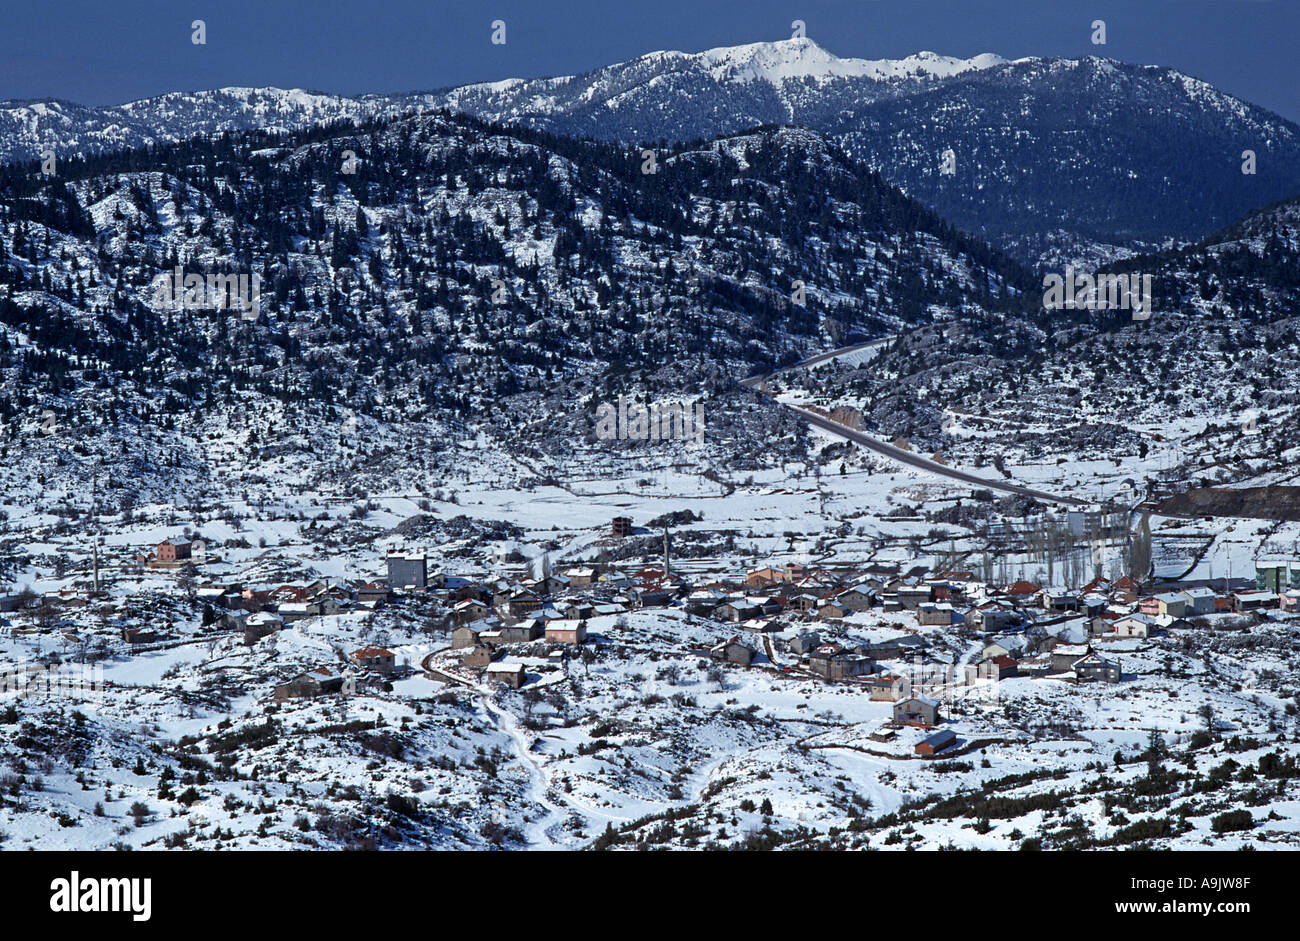 Rural scene of a village from the Taurus mountains en route from C Anatolia to the Coast Turkey A snow clad landscape March - Stock Image